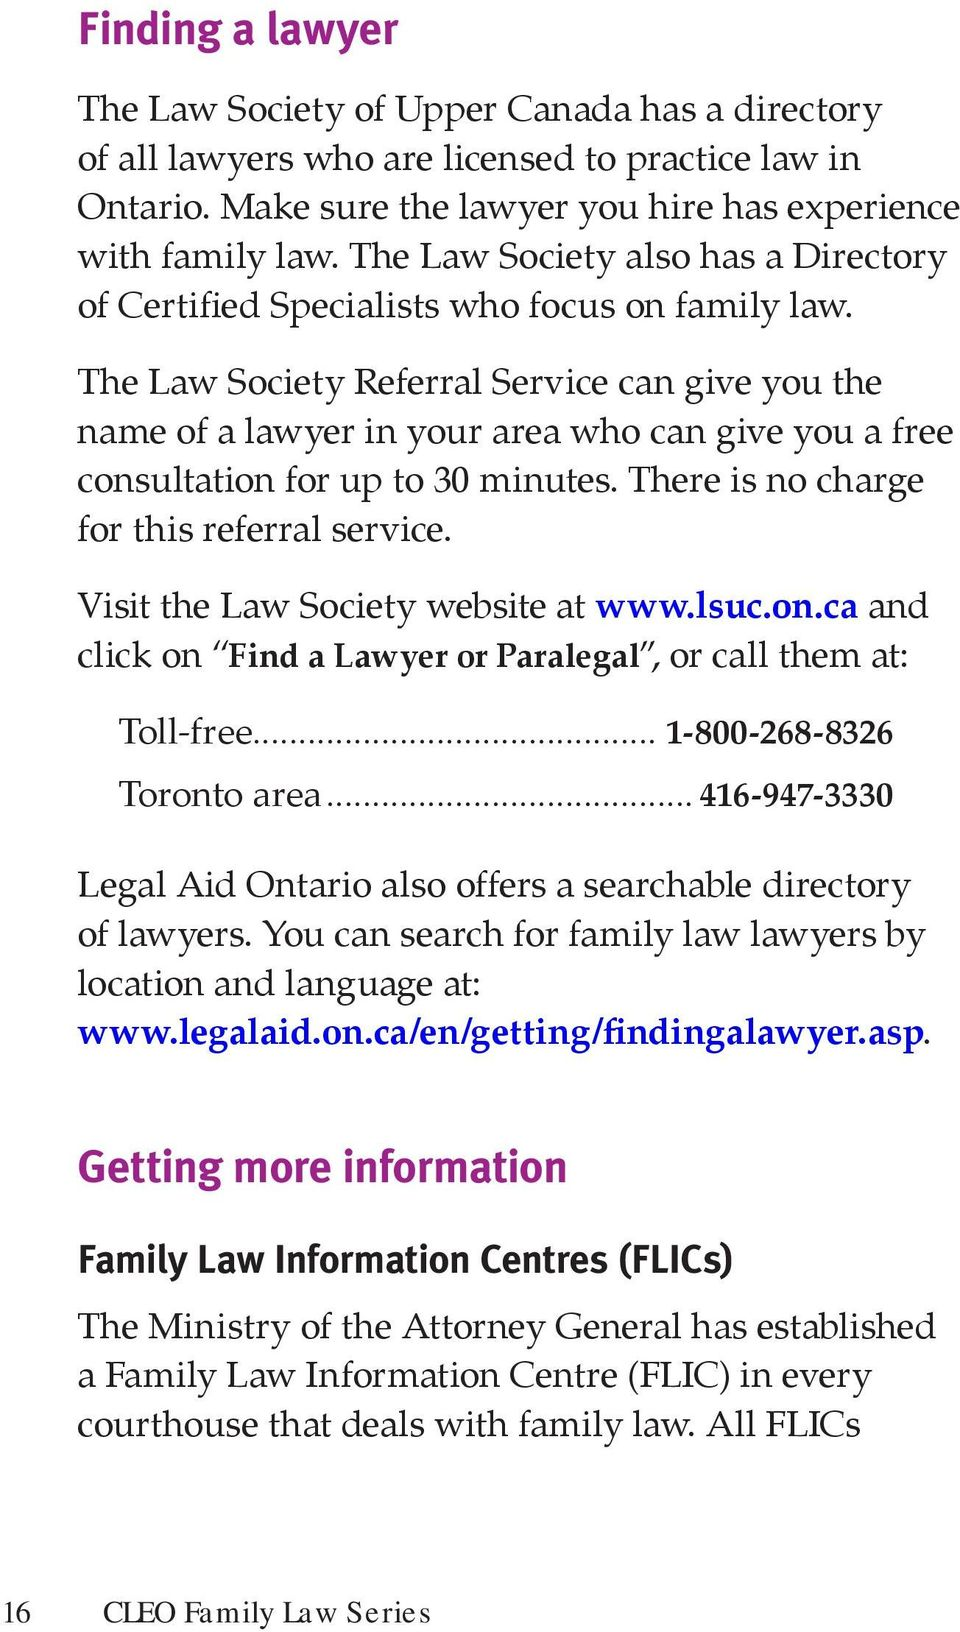 The Law Society Referral Service can give you the name of a lawyer in your area who can give you a free consultation for up to 30 minutes. There is no charge for this referral service.